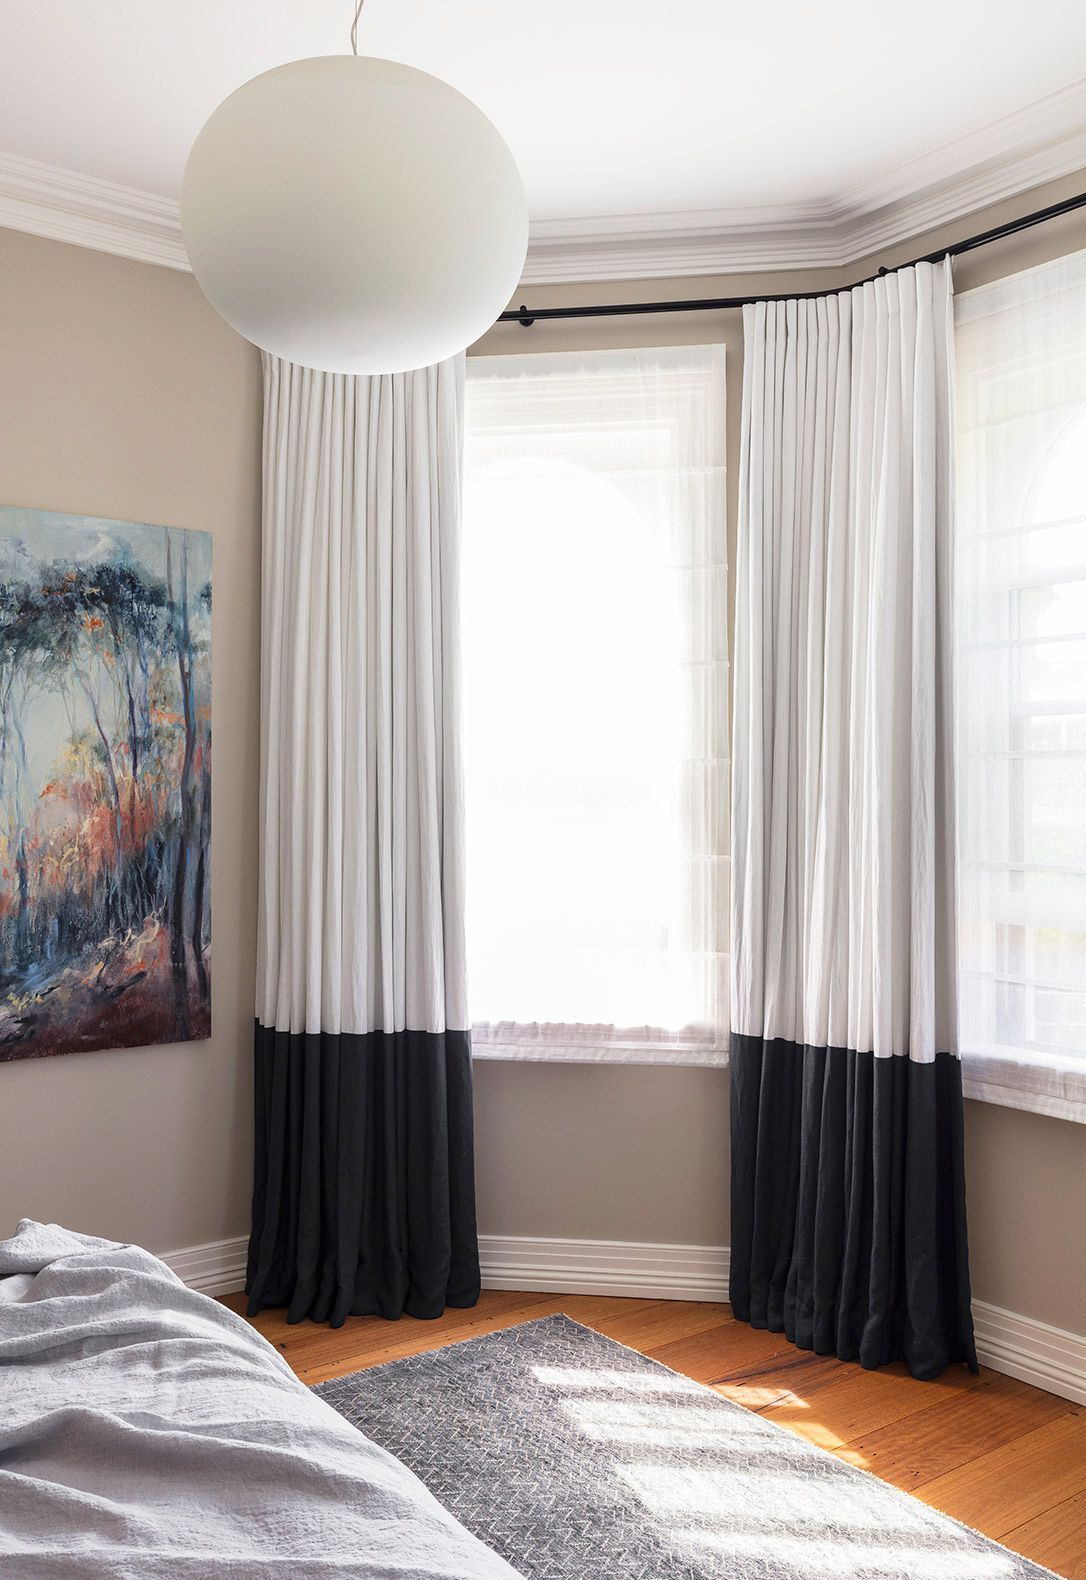 These neutral colorblocked curtains liven up otherwise